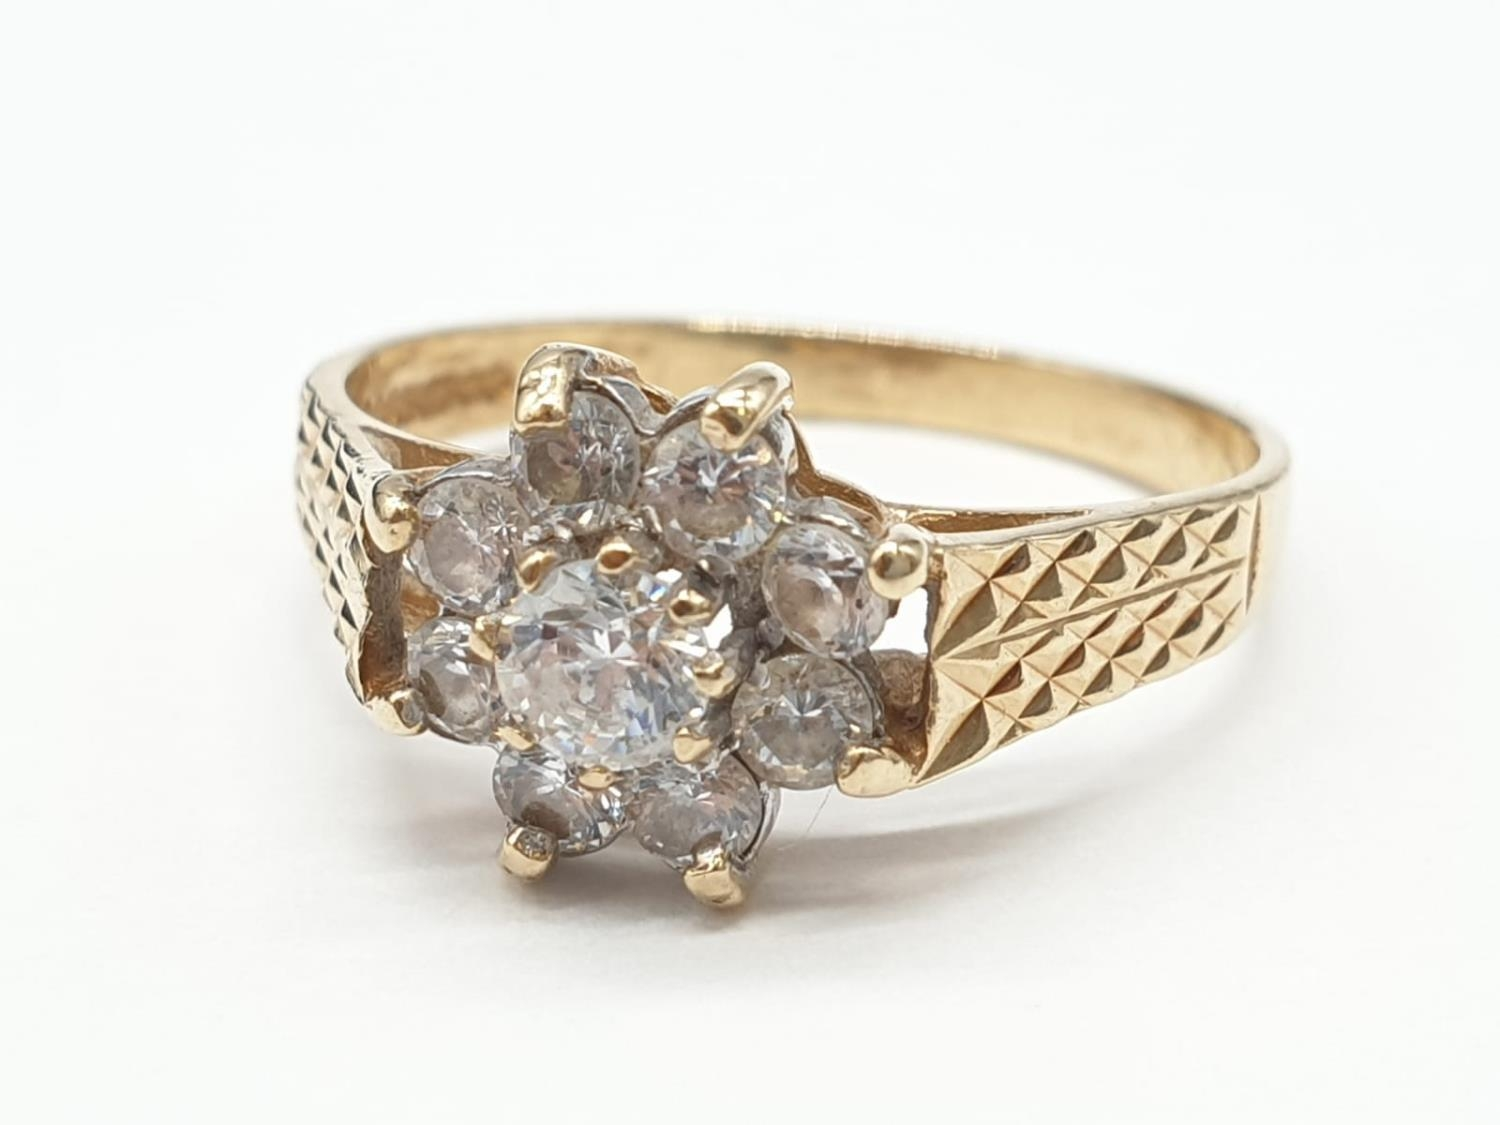 9ct Gold ring having cubic zirconia cluster to top in claw mounts and chased design work to